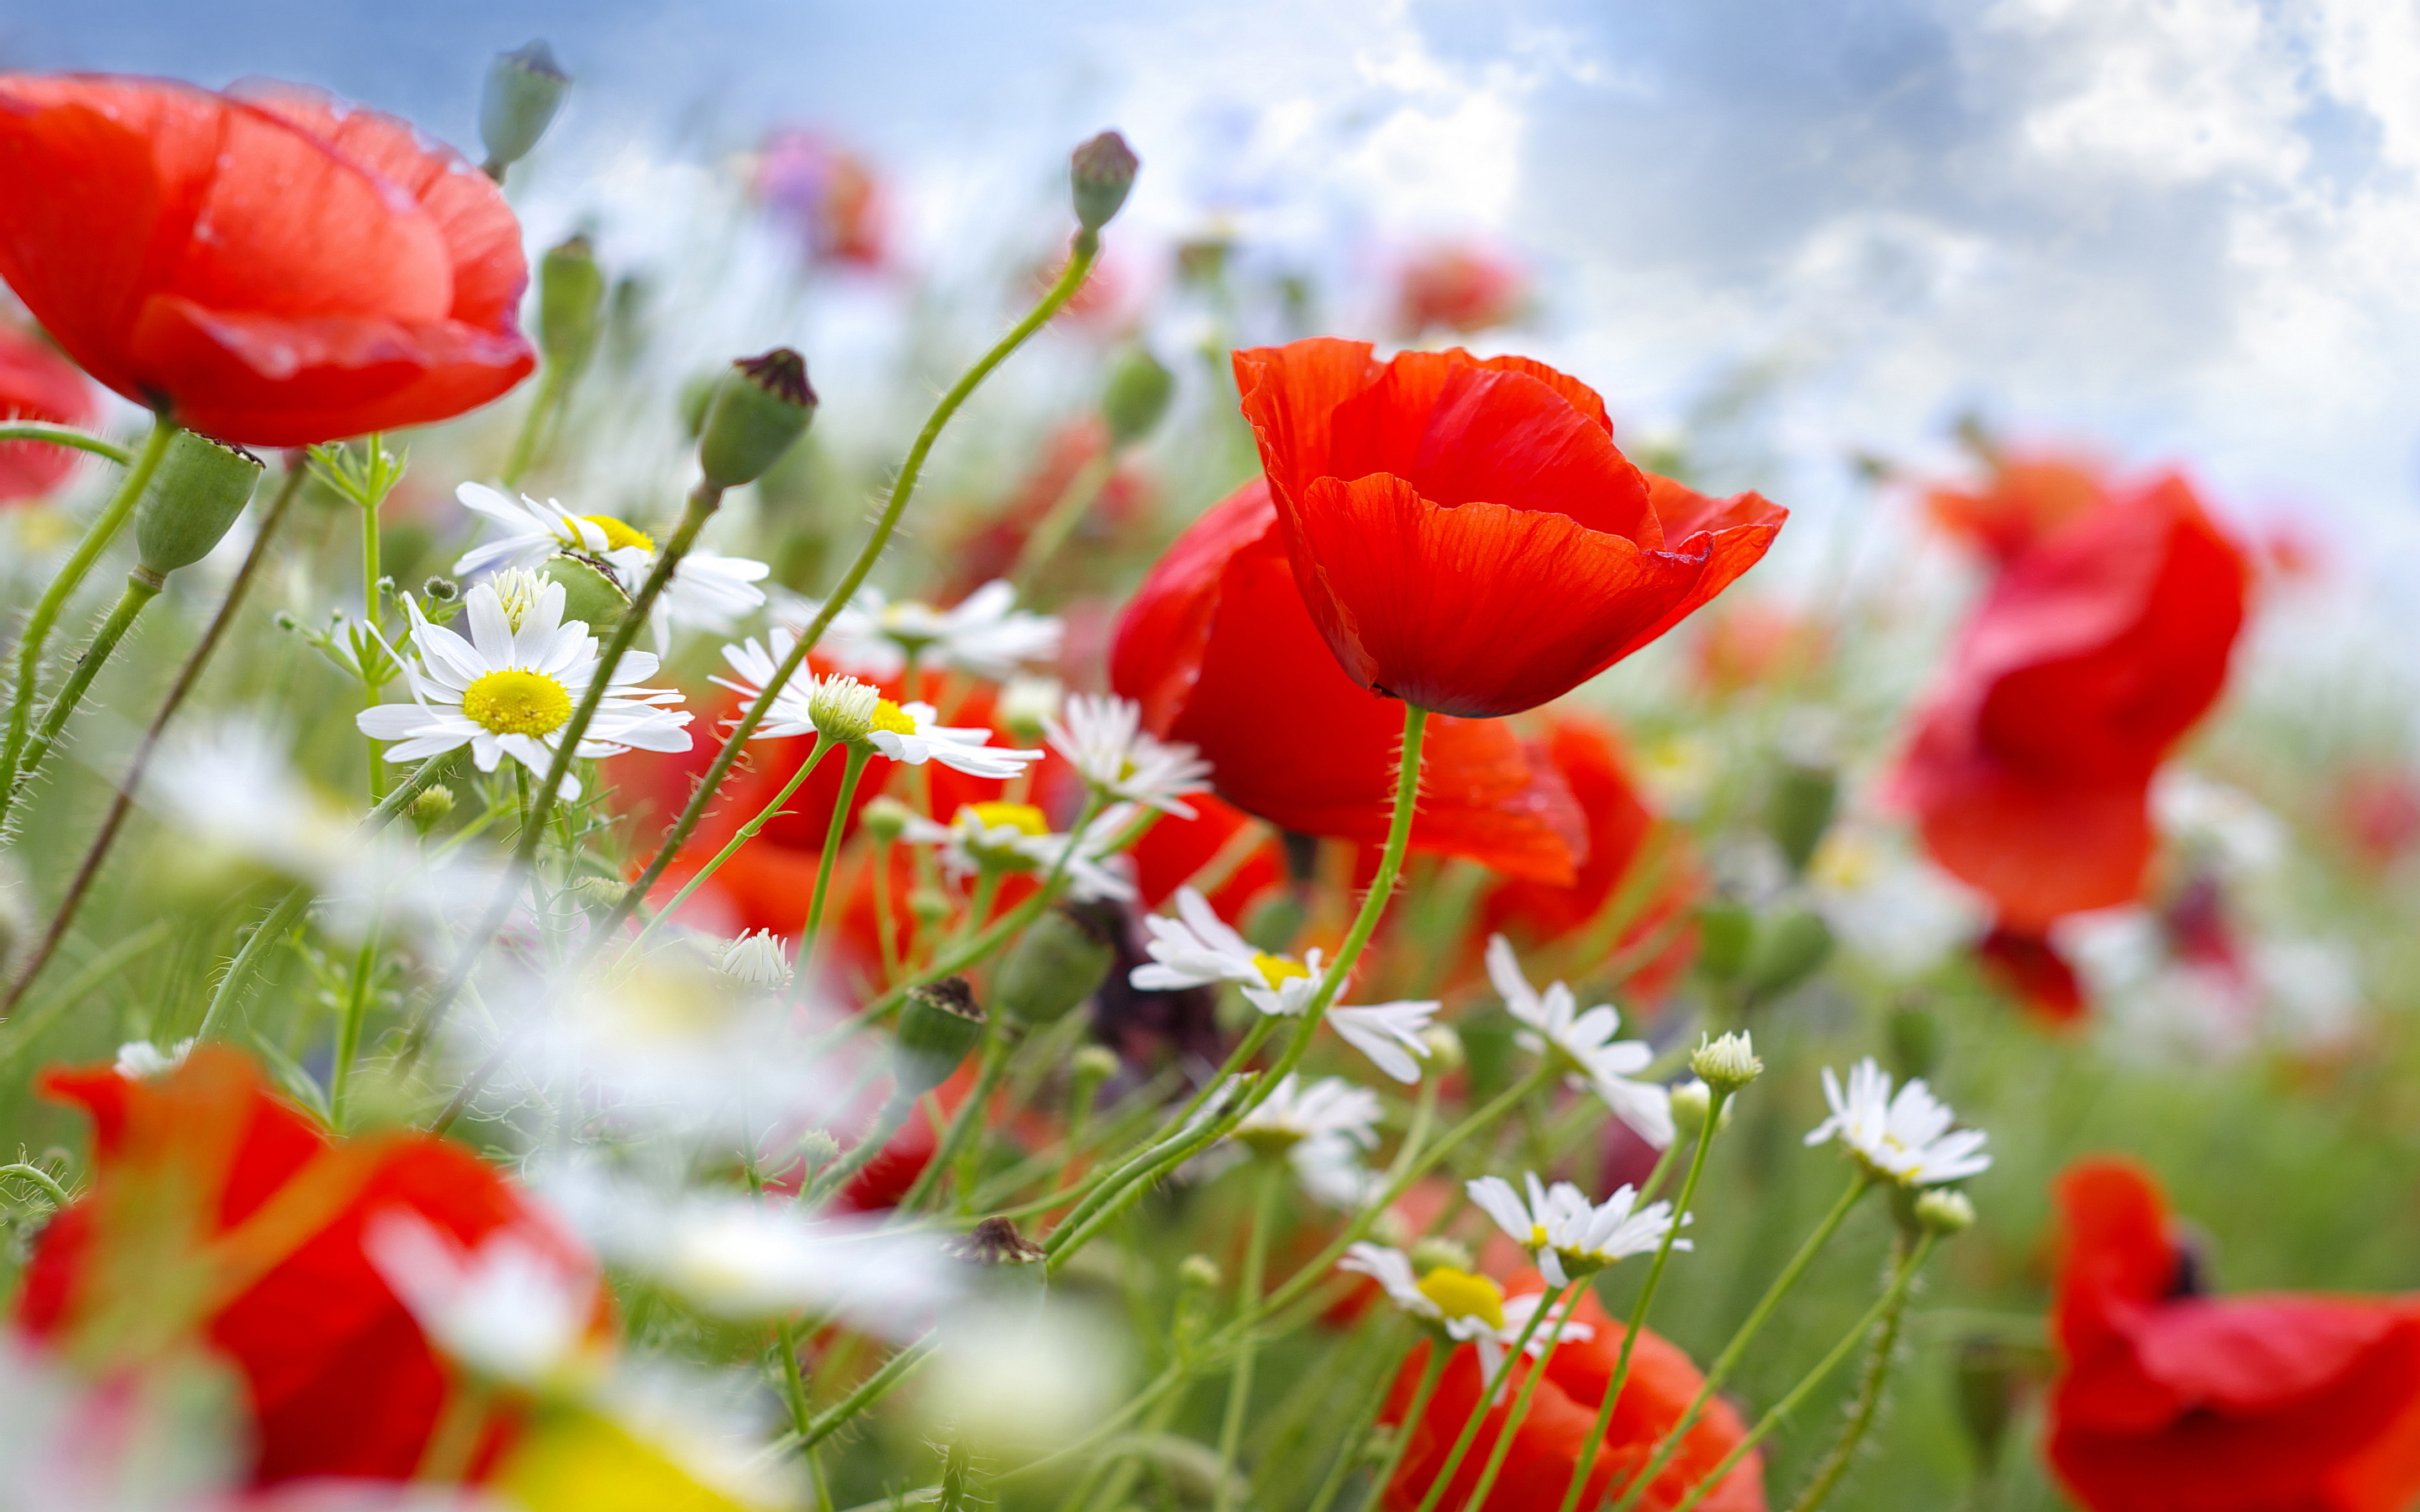 poppies daisies